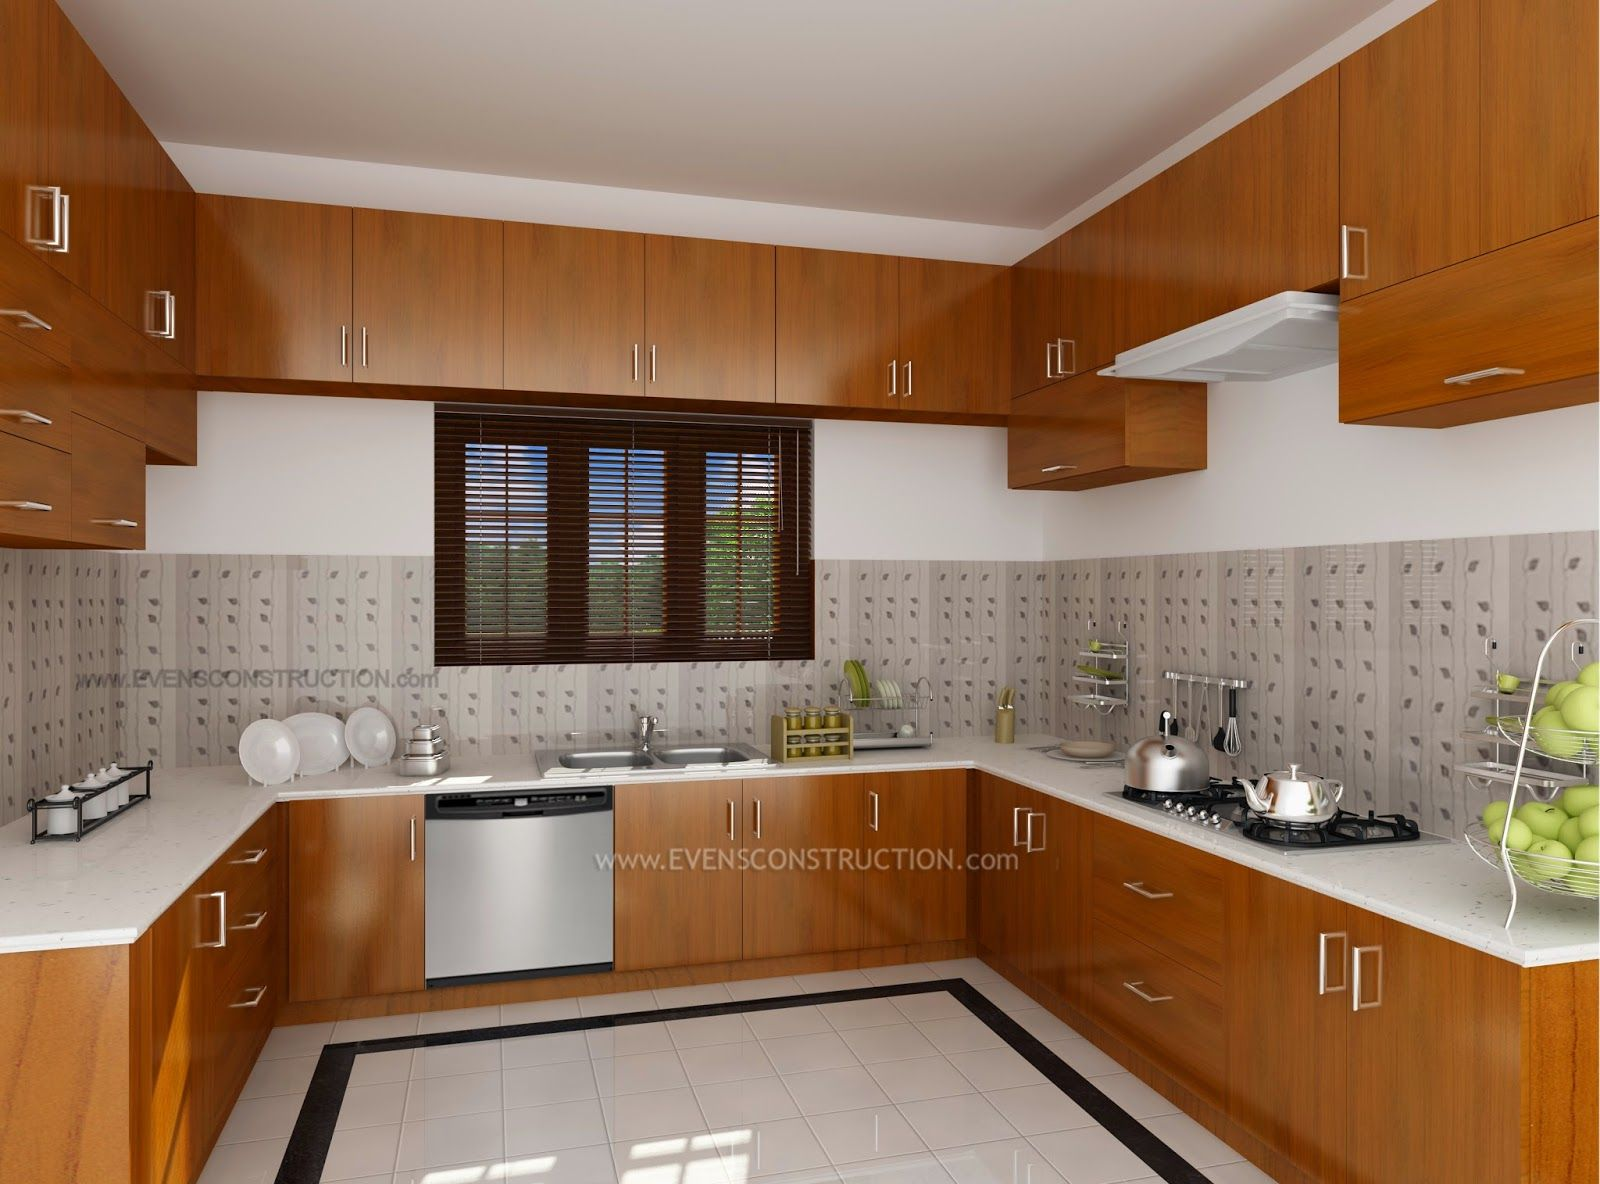 Modular Kitchen Interiors Kerala Kitchen Interior Design Modular Kitchen Kerala Kerala